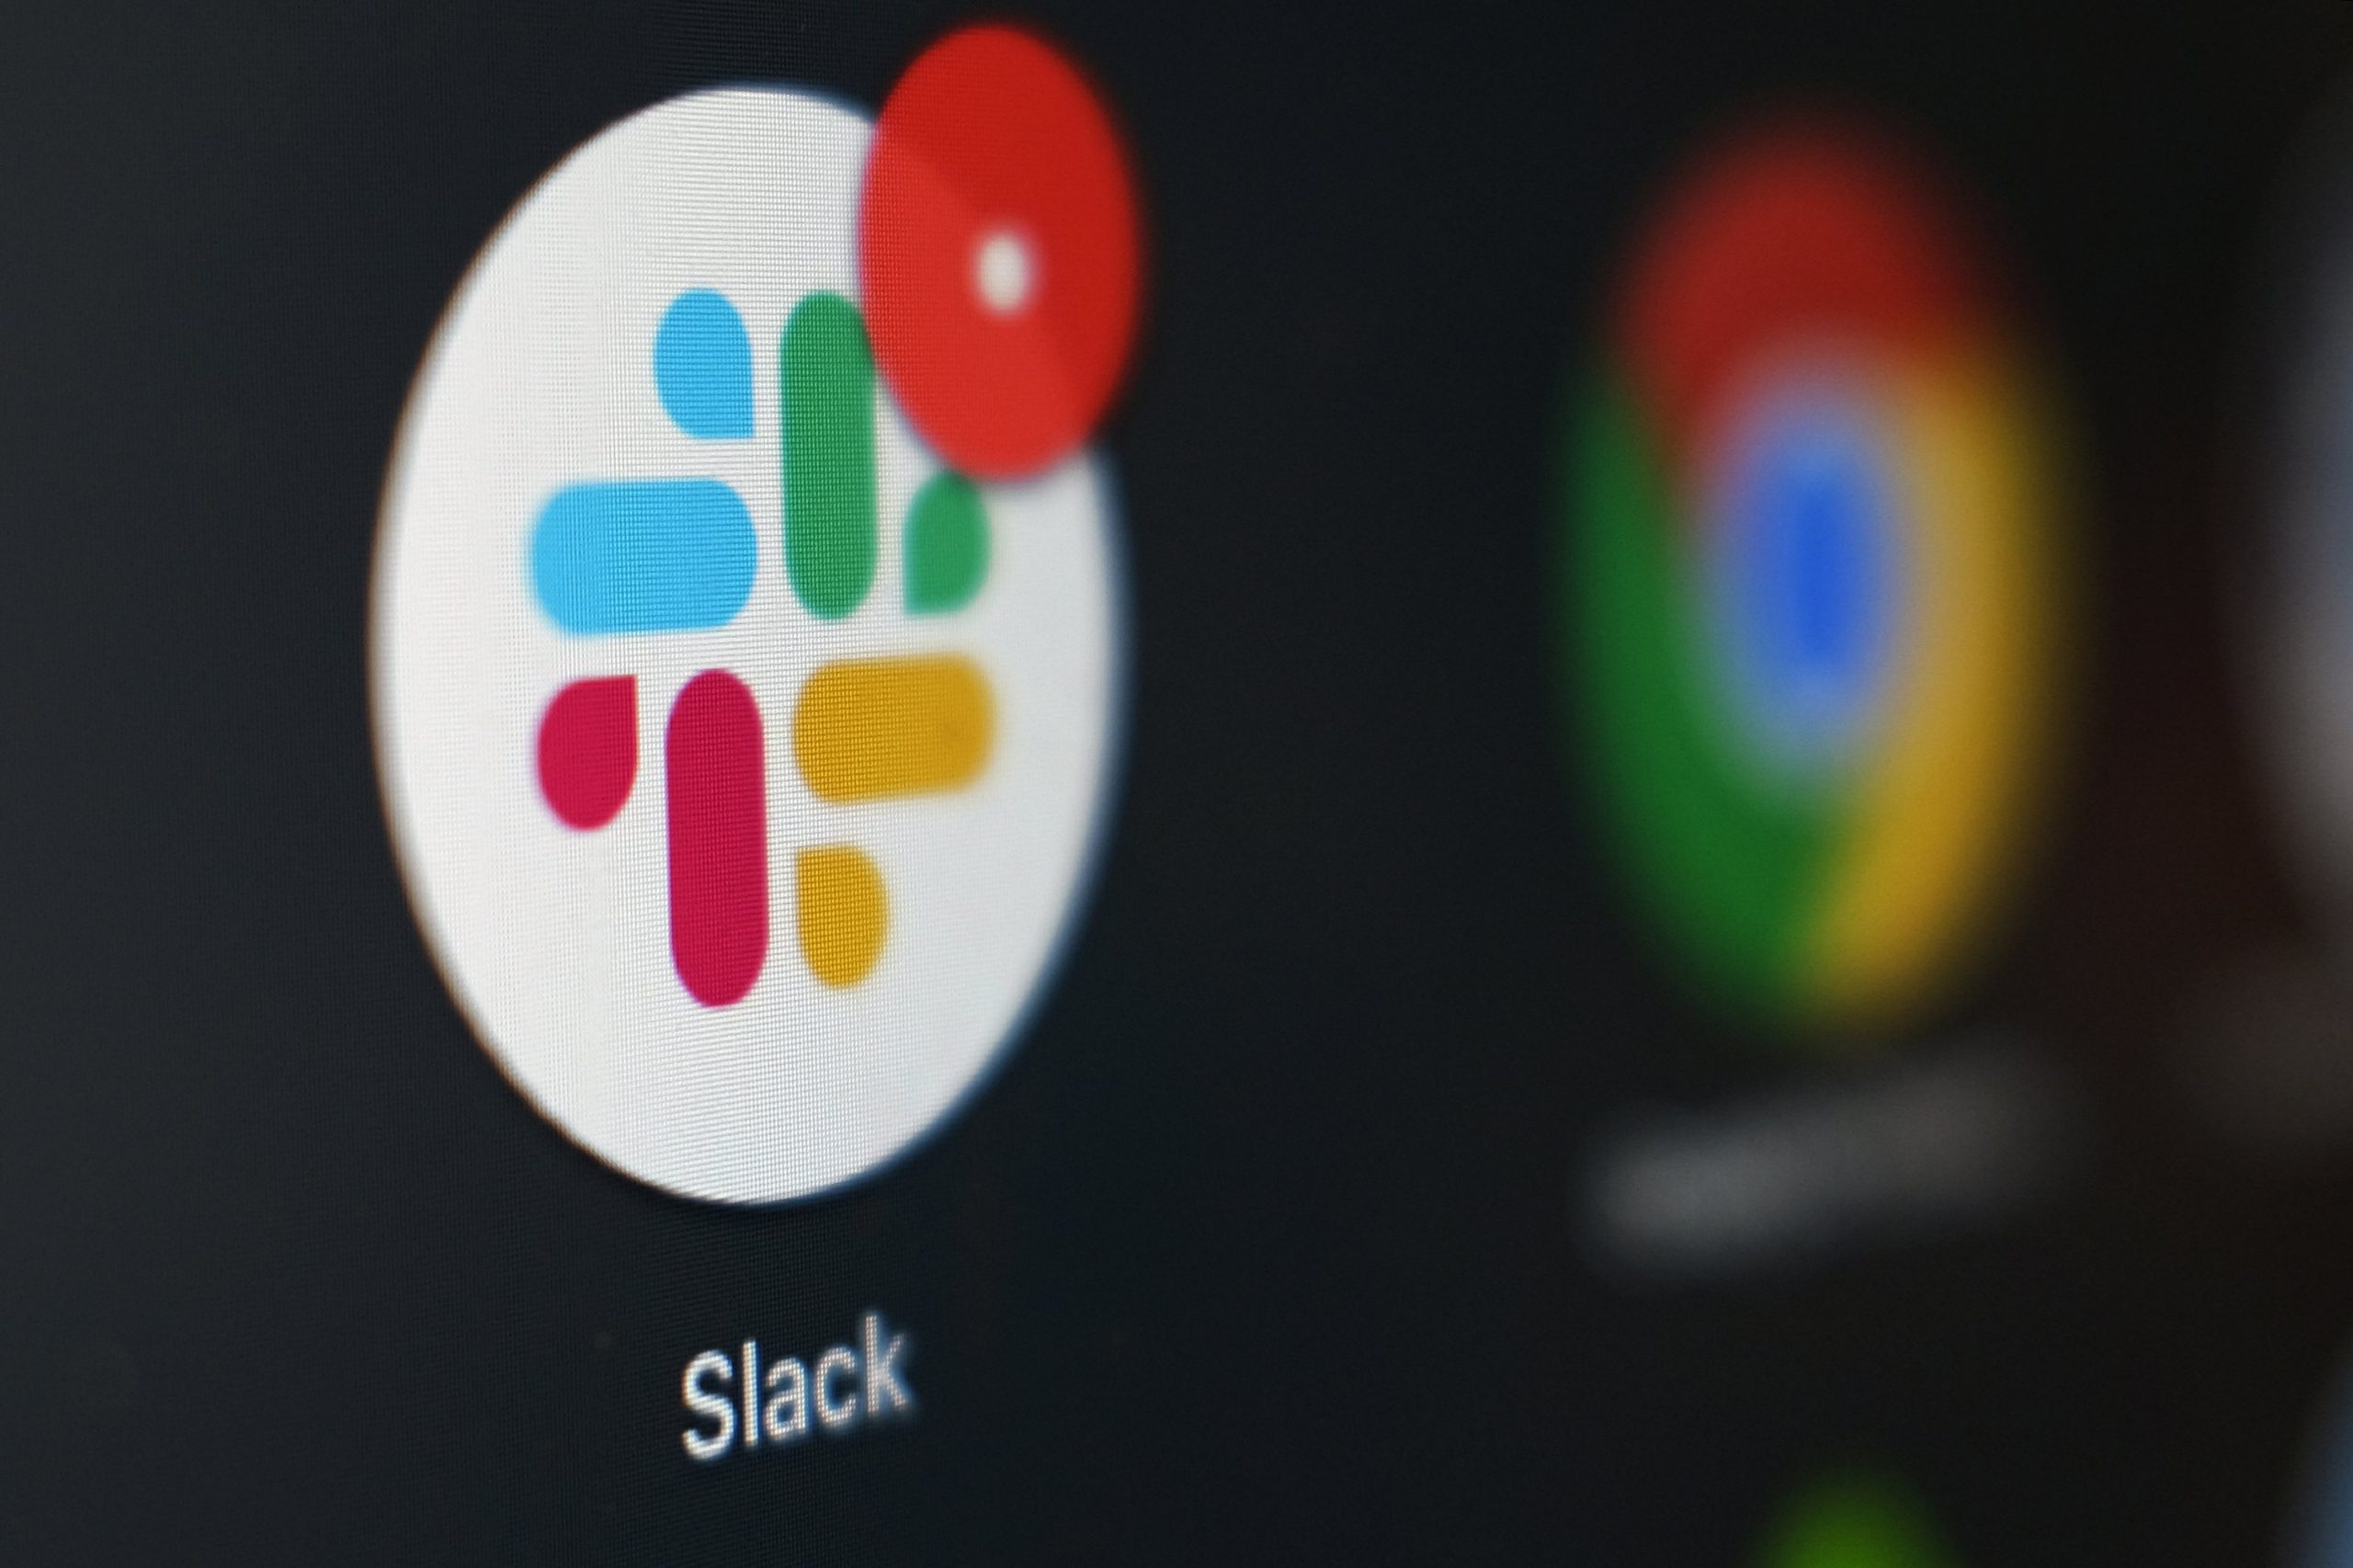 Slack starts 2021 with a global outage